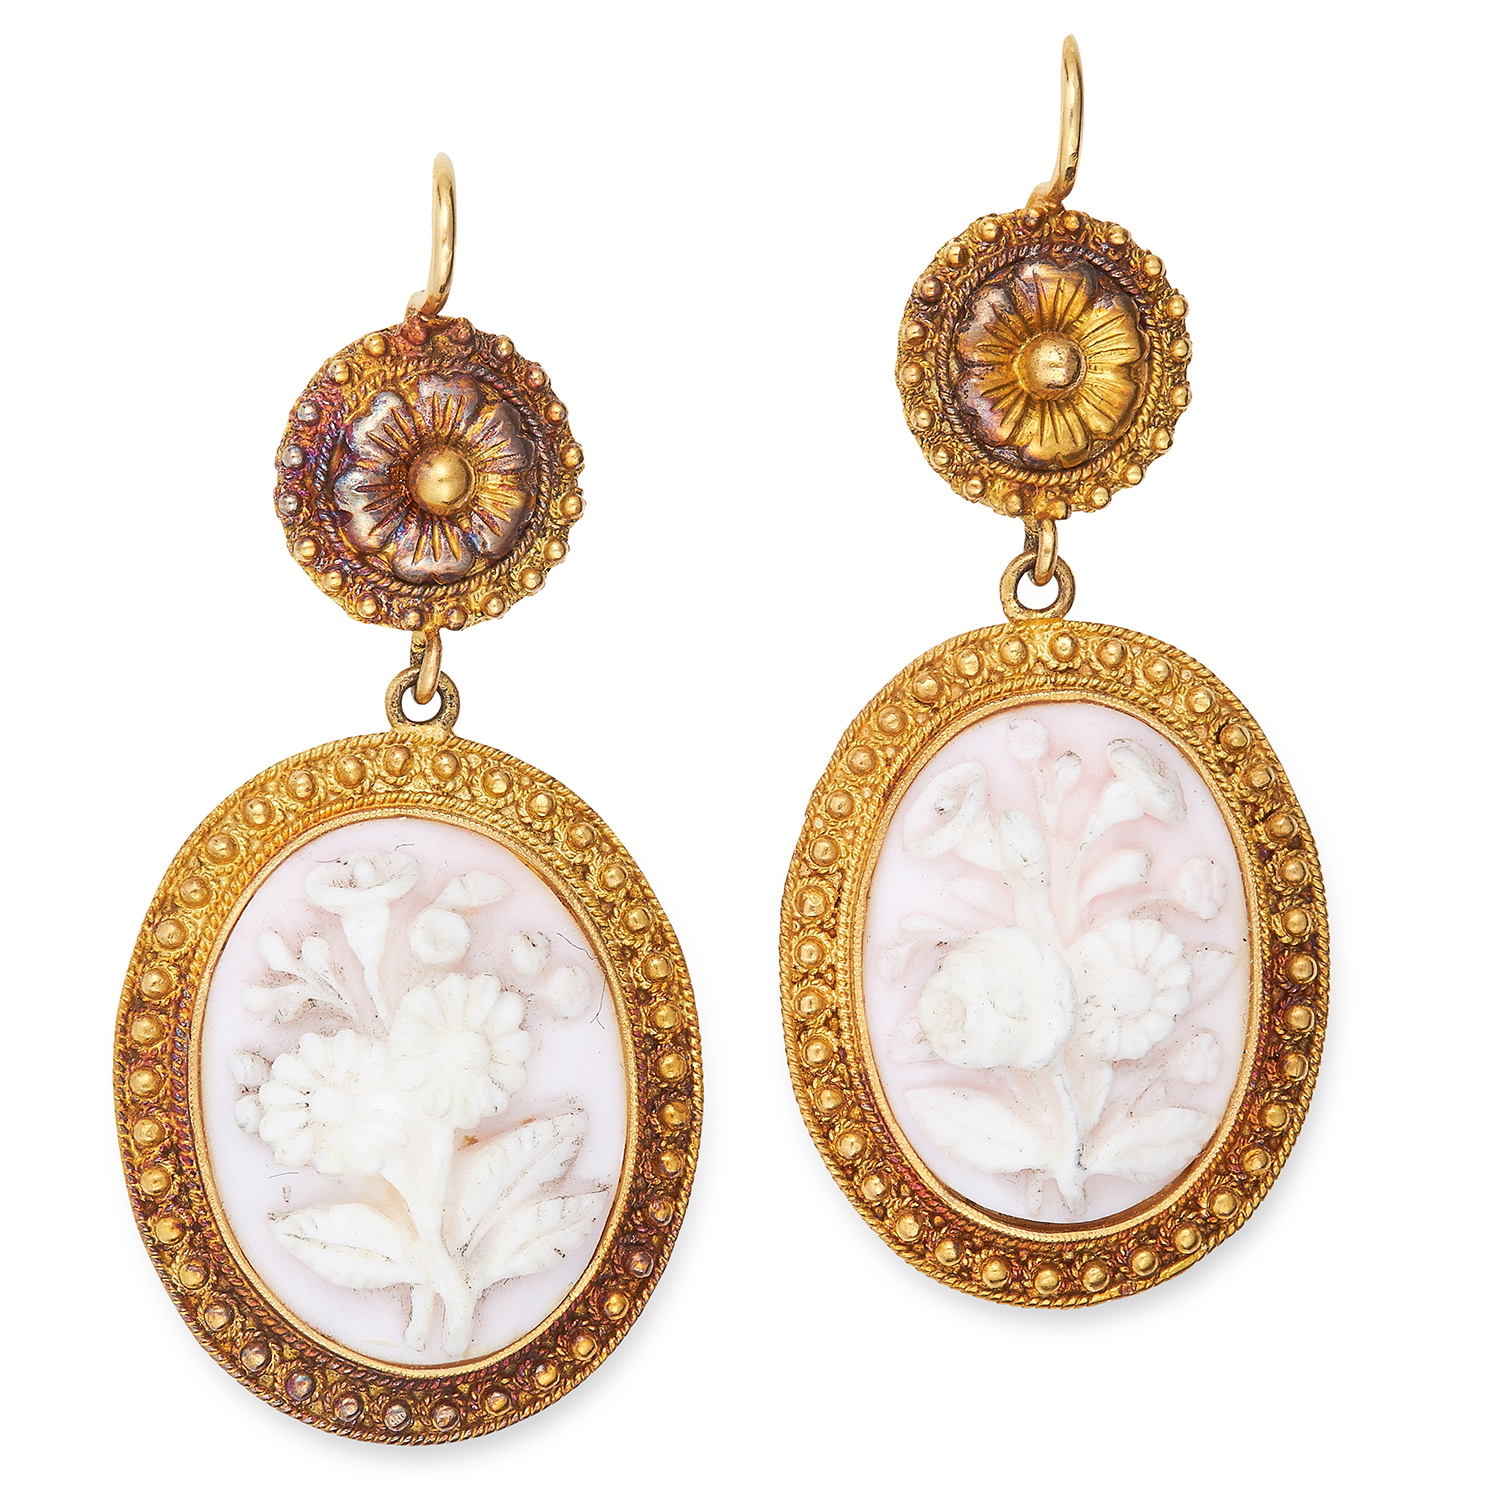 ANTIQUE CORAL CAMEO EARRING AND NECKLACE SUITE in Etruscan revival design, set with carved coral - Bild 3 aus 3